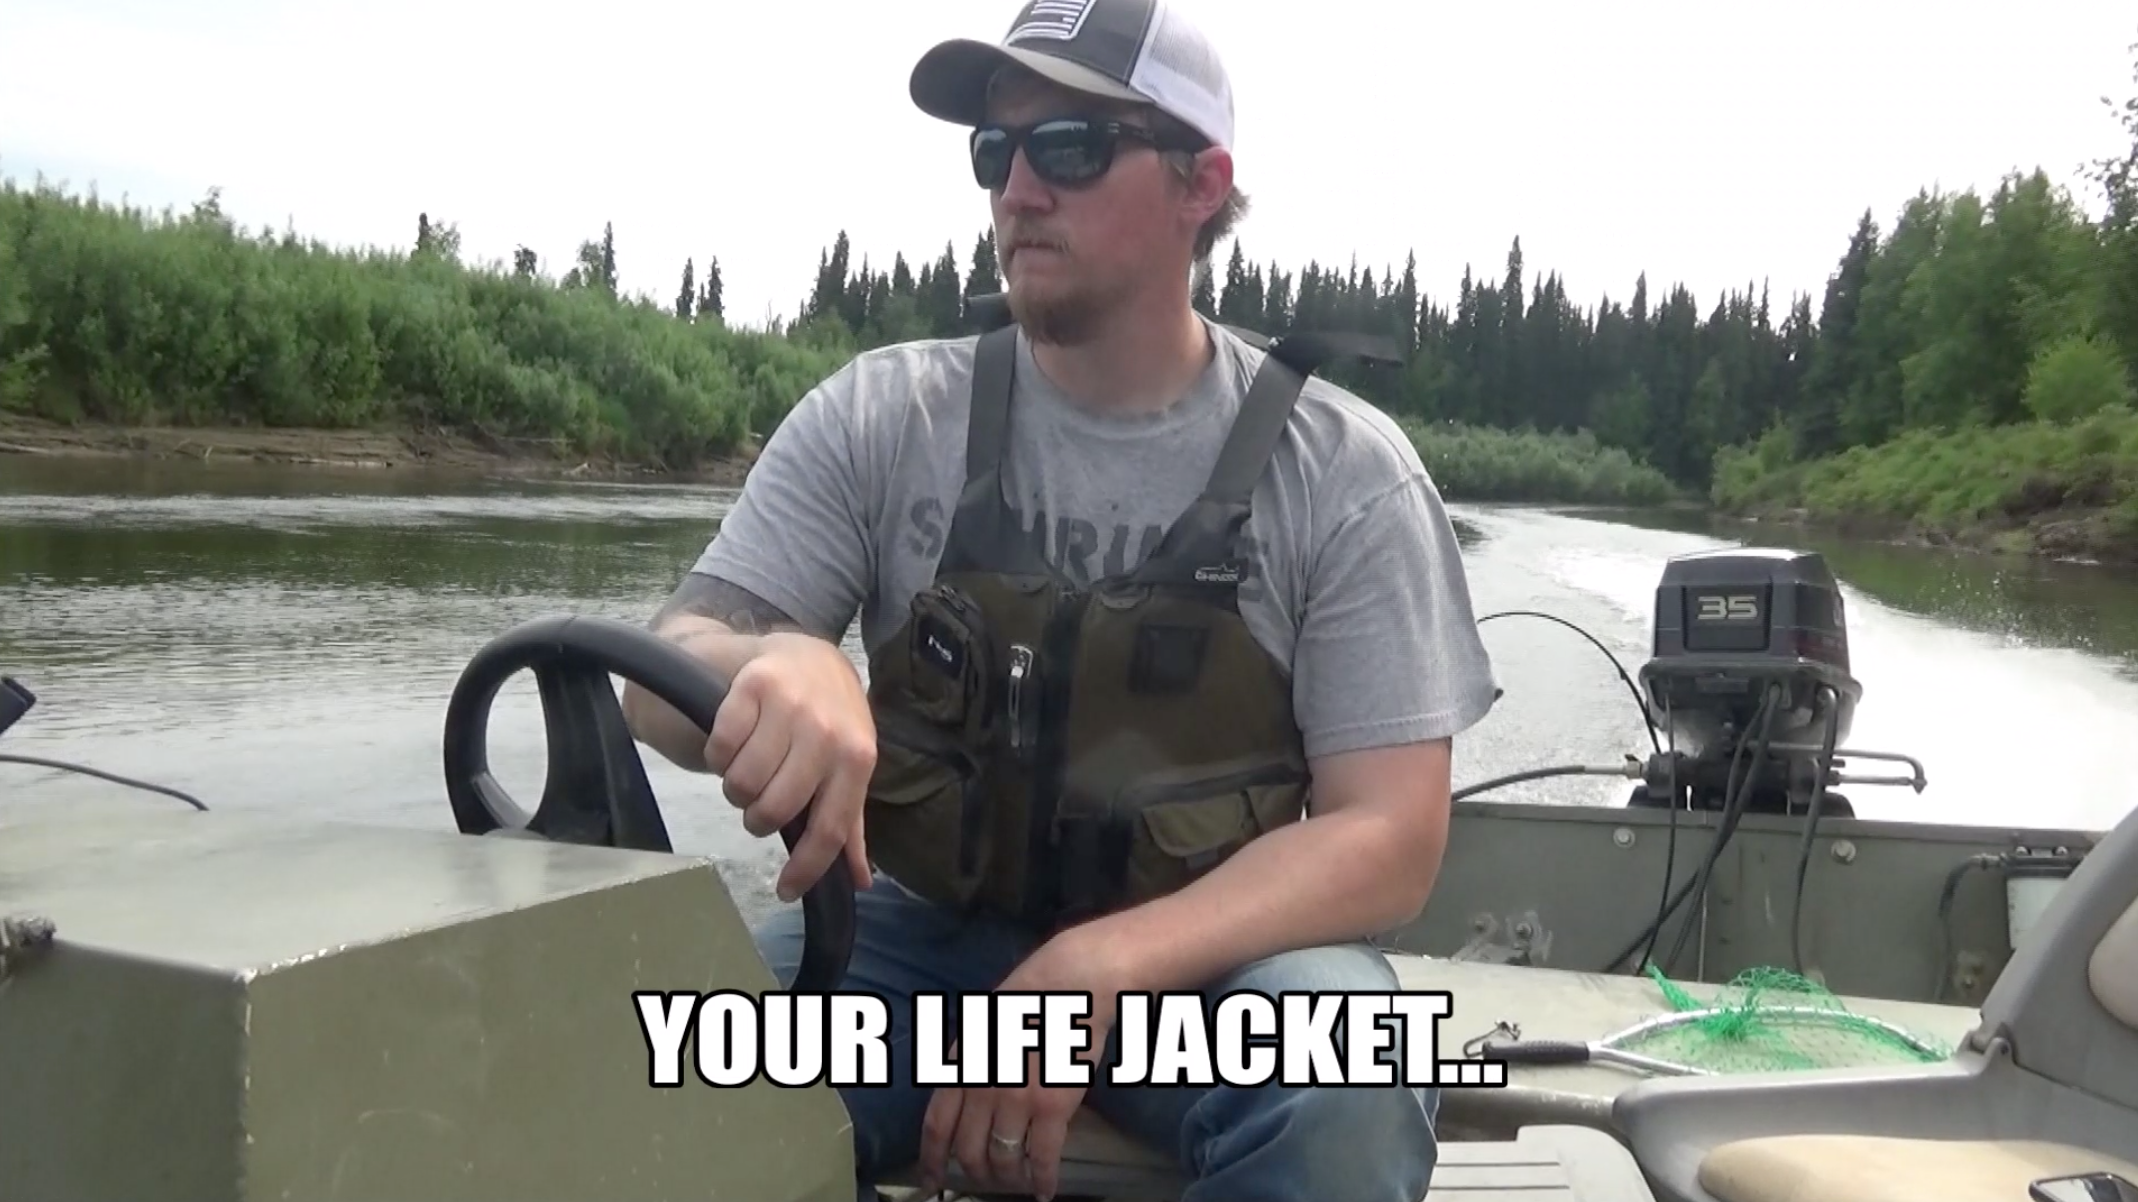 Why Even the Most Bad-Ass Outdoorsmen Need a Life Jacket